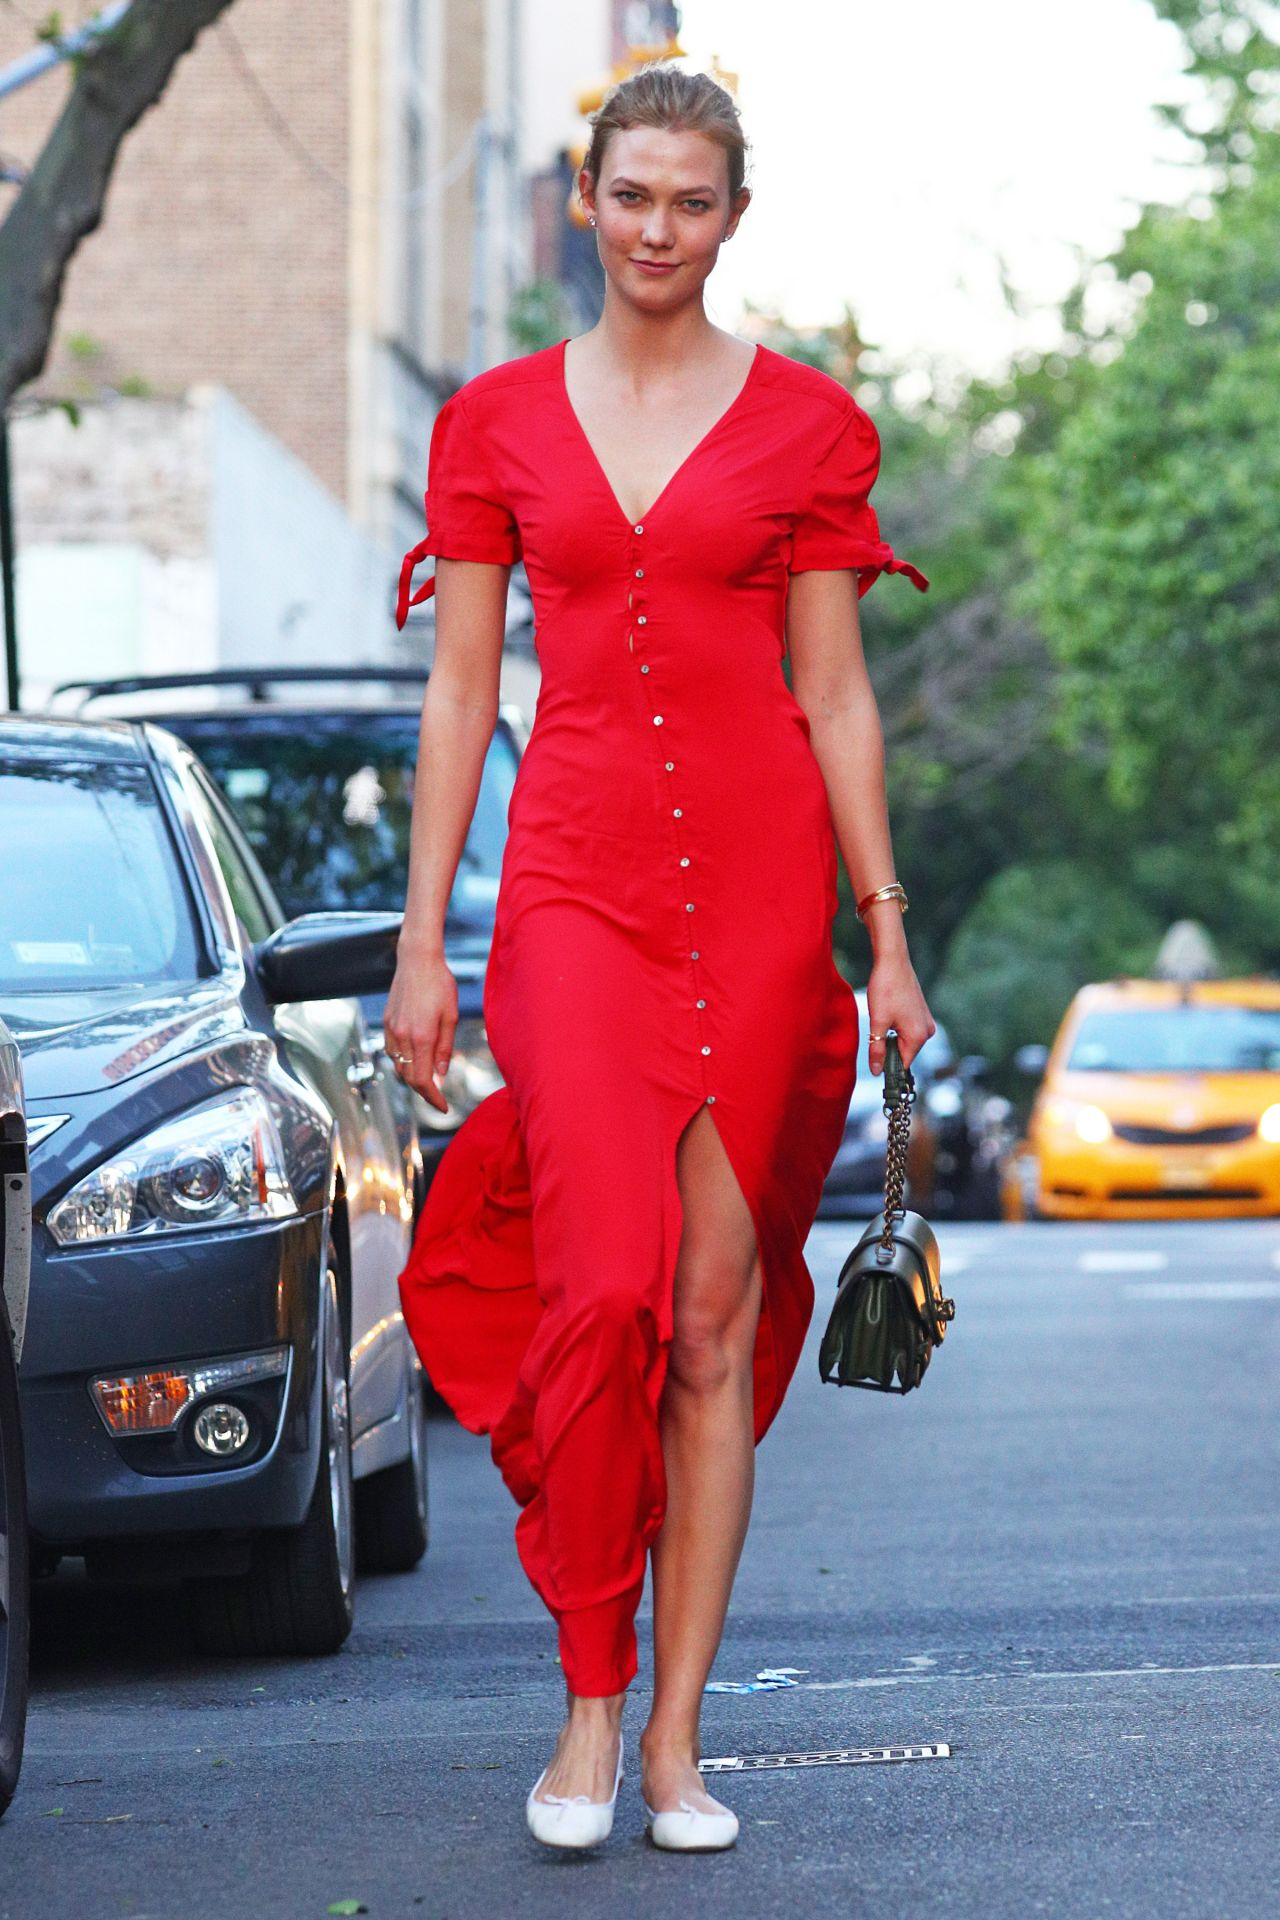 d243d18e972 Karlie Kloss in a Bright Red Button Up Dress - New York City 05 17 2017